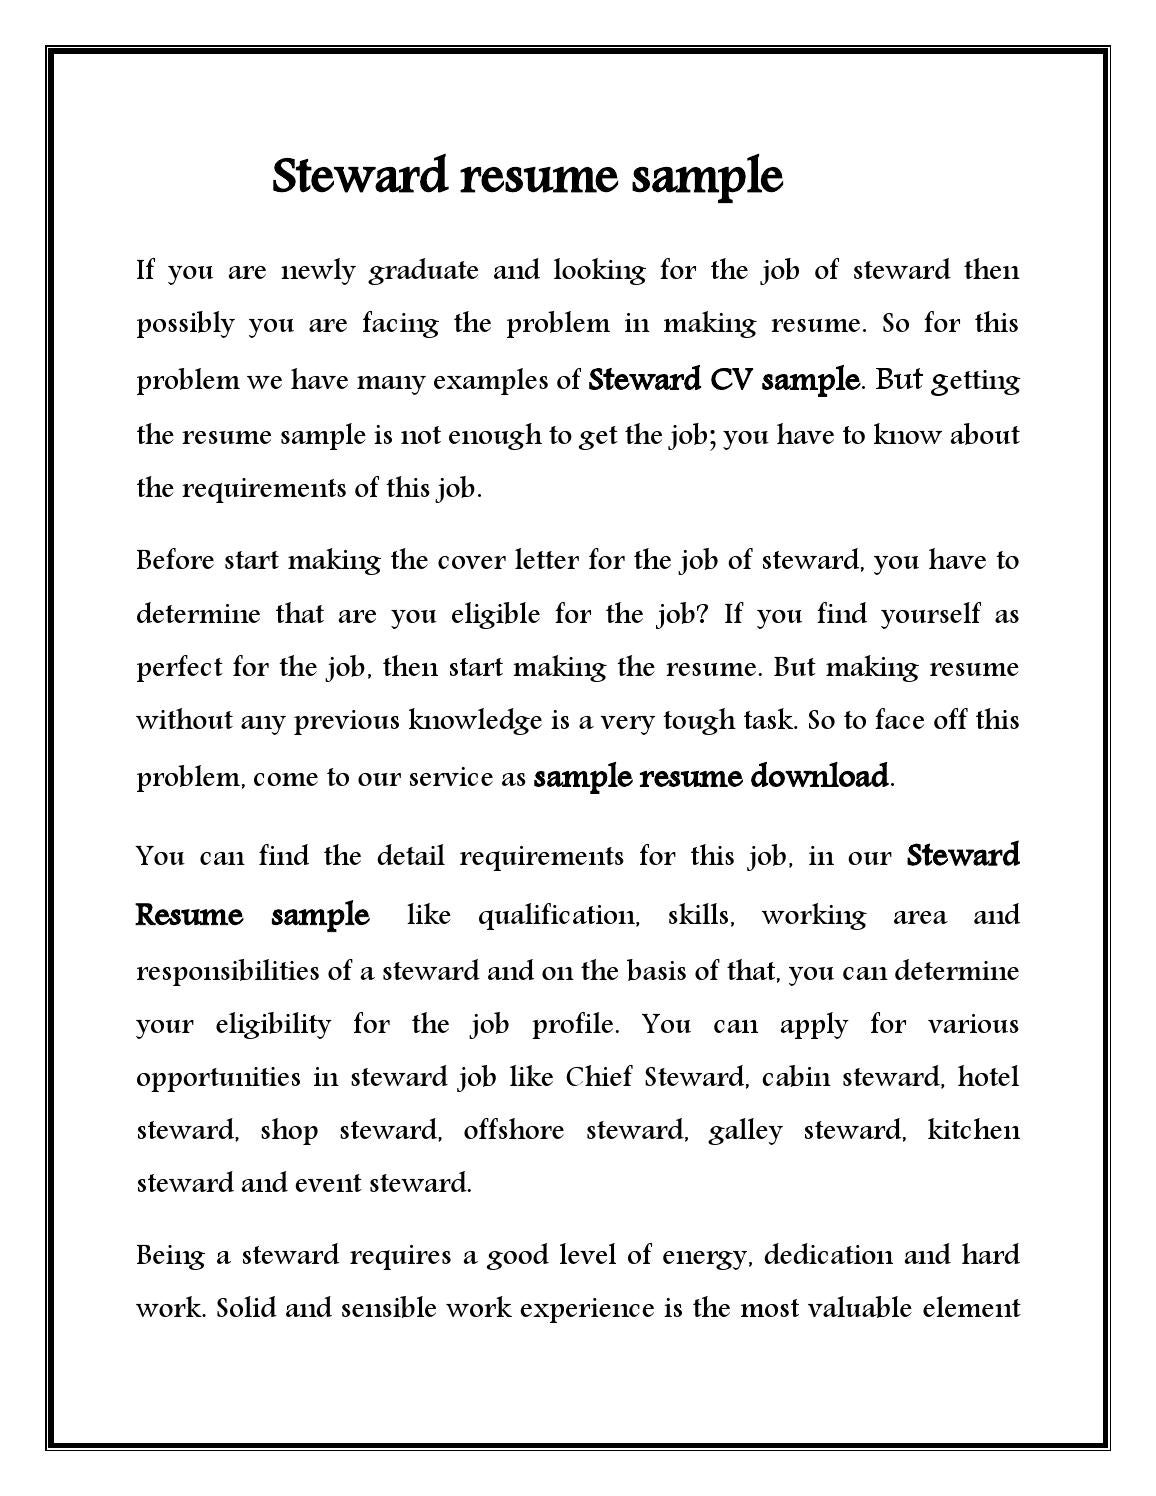 Steward cv sample for hotel stewerd job by for How to start a covering letter for a cv